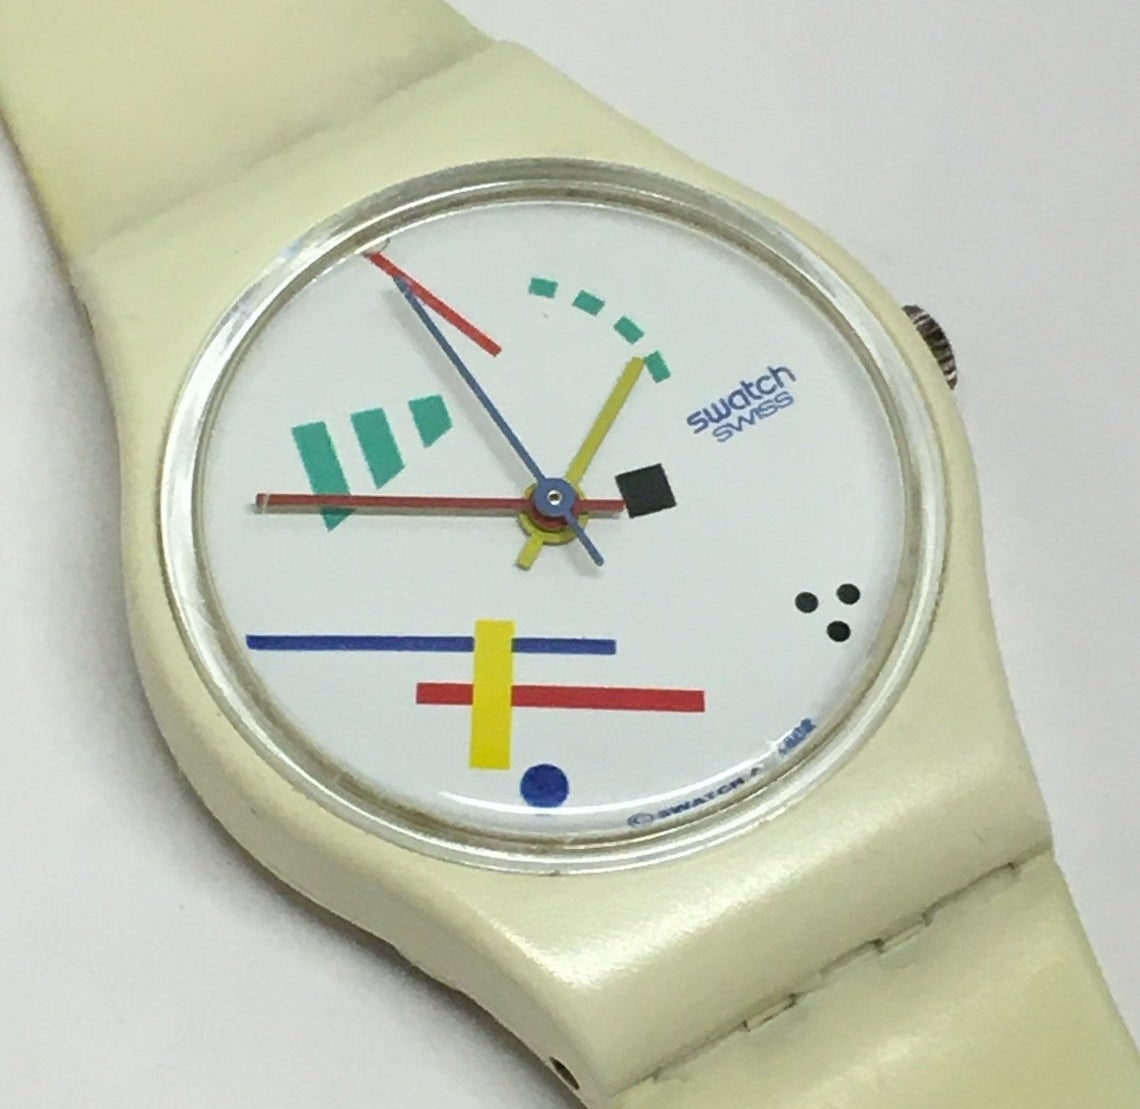 A close up of the face of a Swatch Watch